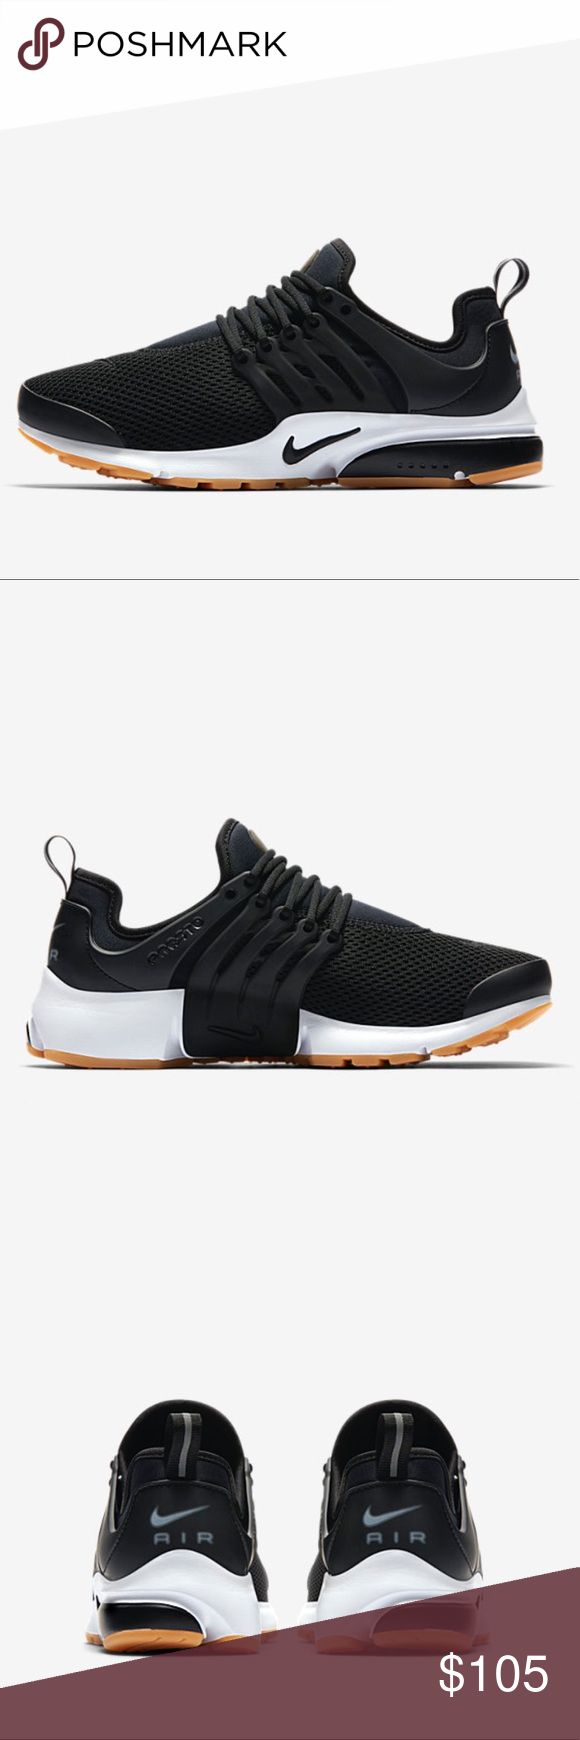 Nike Air Presto || Size: 5 Women Friend bought me the wrong color. Brand new. Never worn. Nike Shoes Athletic Shoes